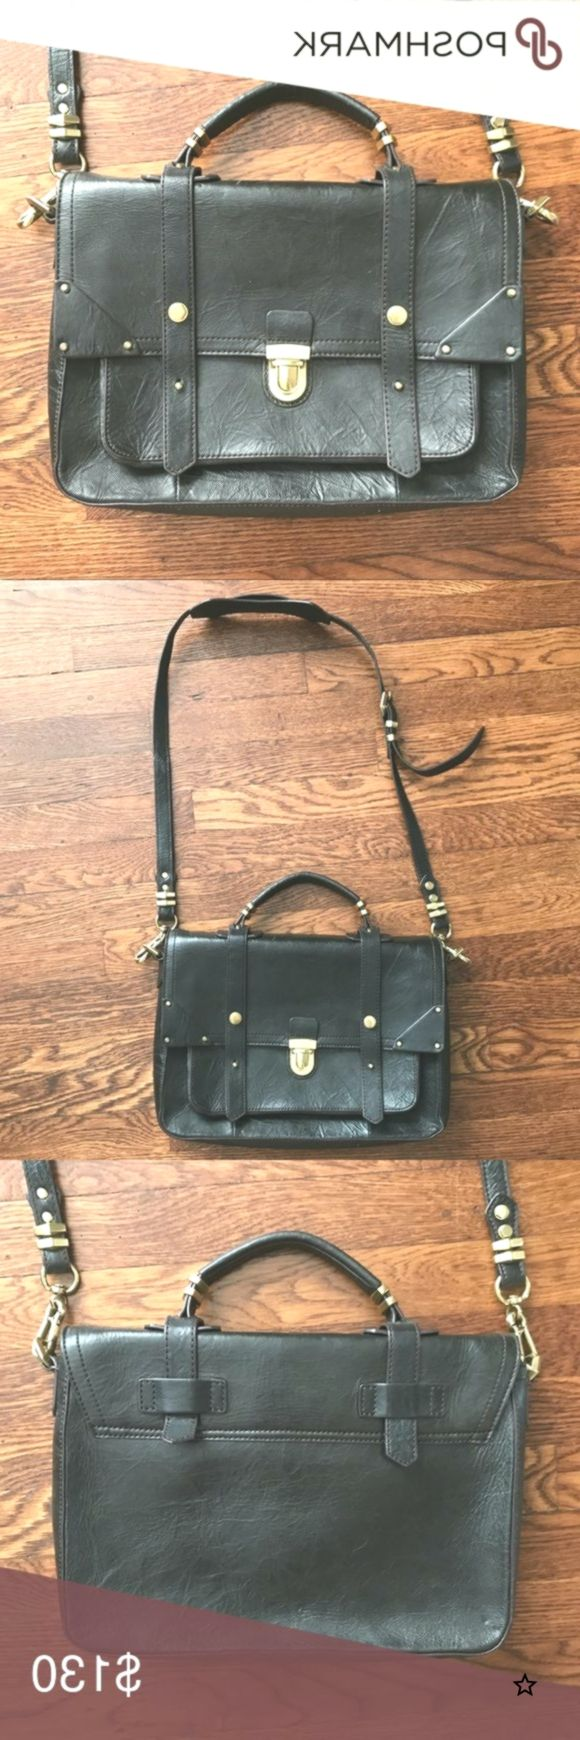 OrYanny Leather Bag Like new condition! Worn a few times. Real genuine espresso ...,